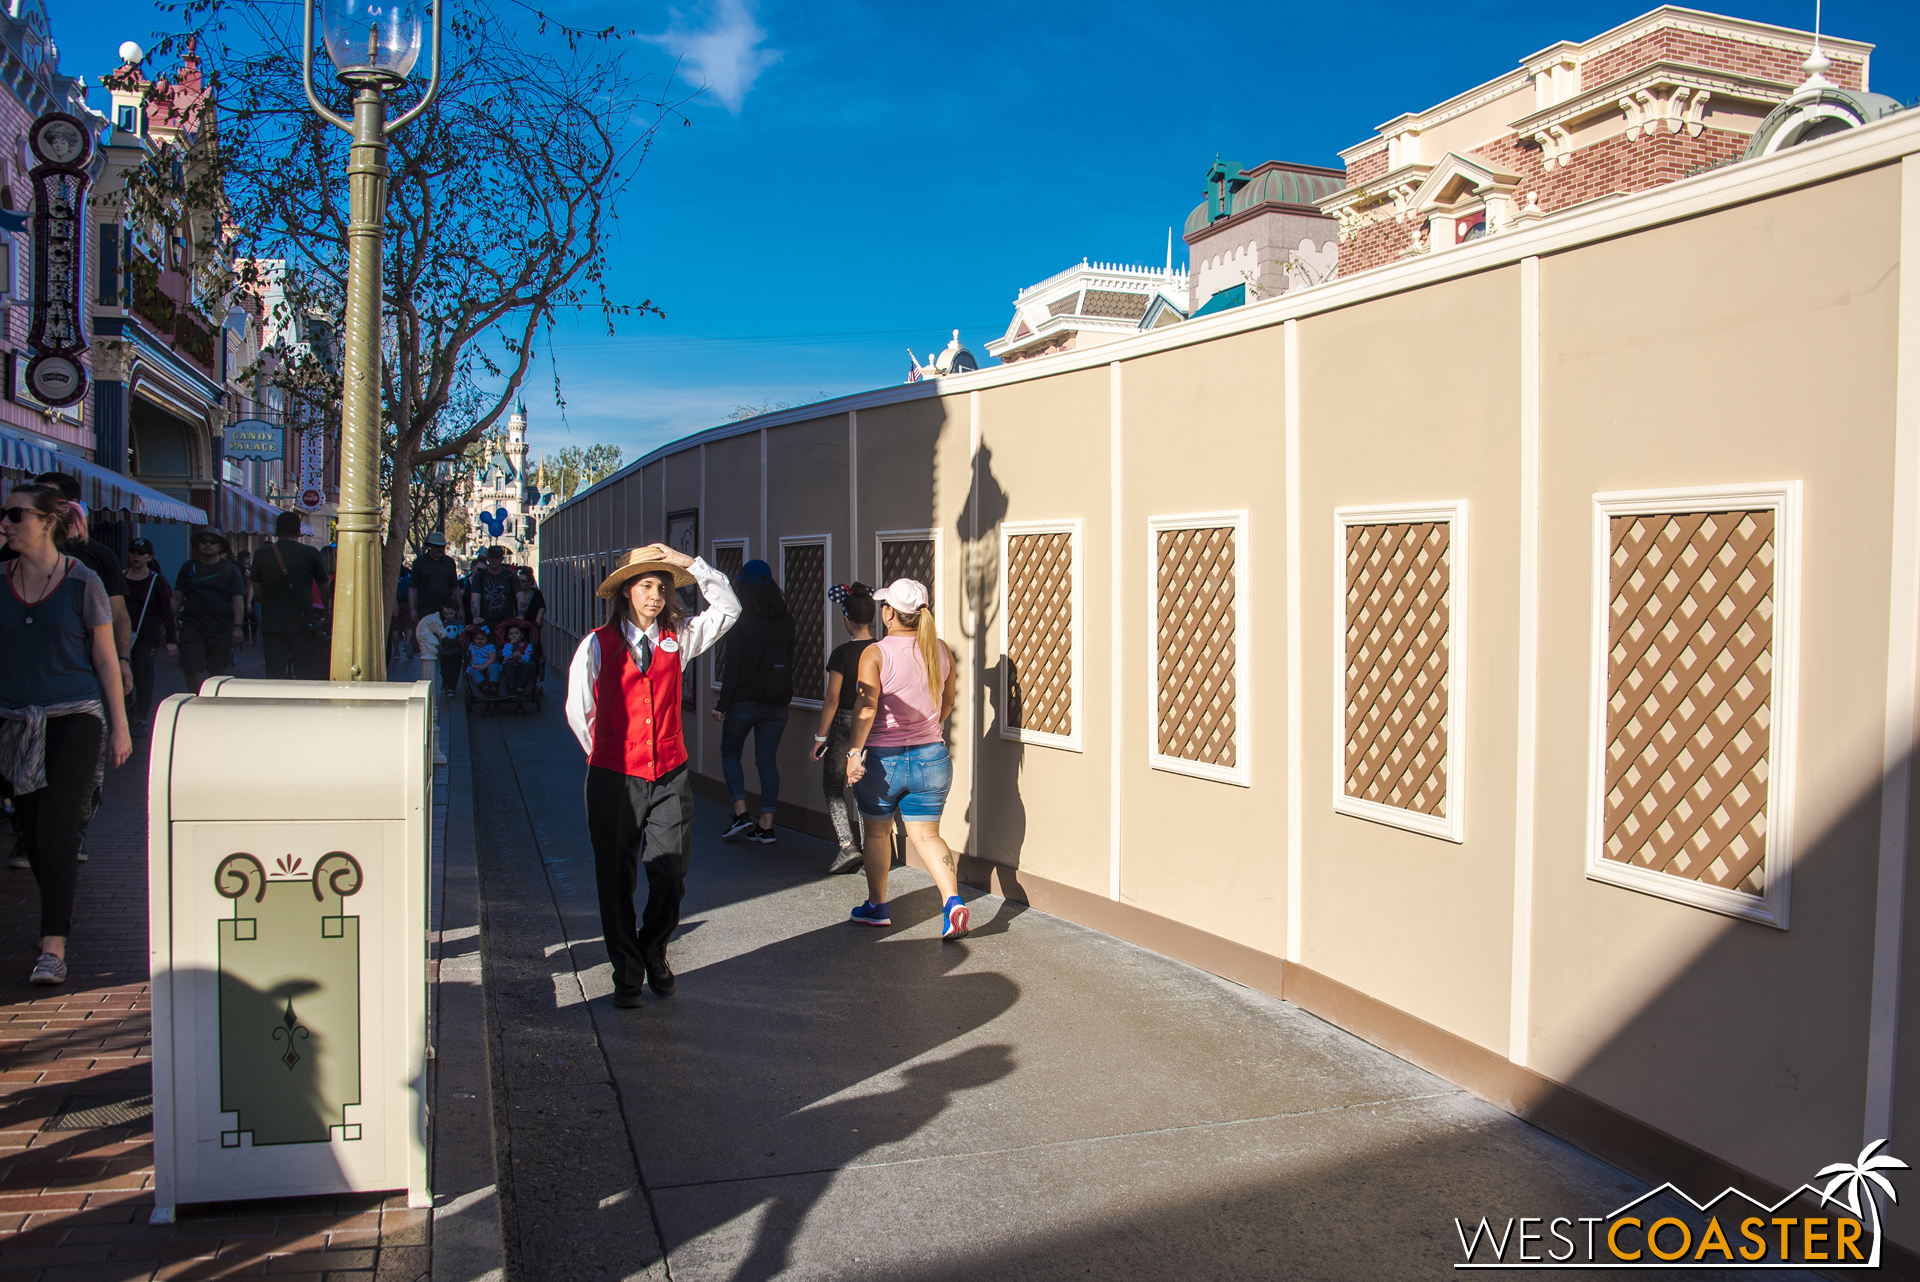 When everything is done, the Main Street trolley tracks will look similar to what's at Buena Vista Street.